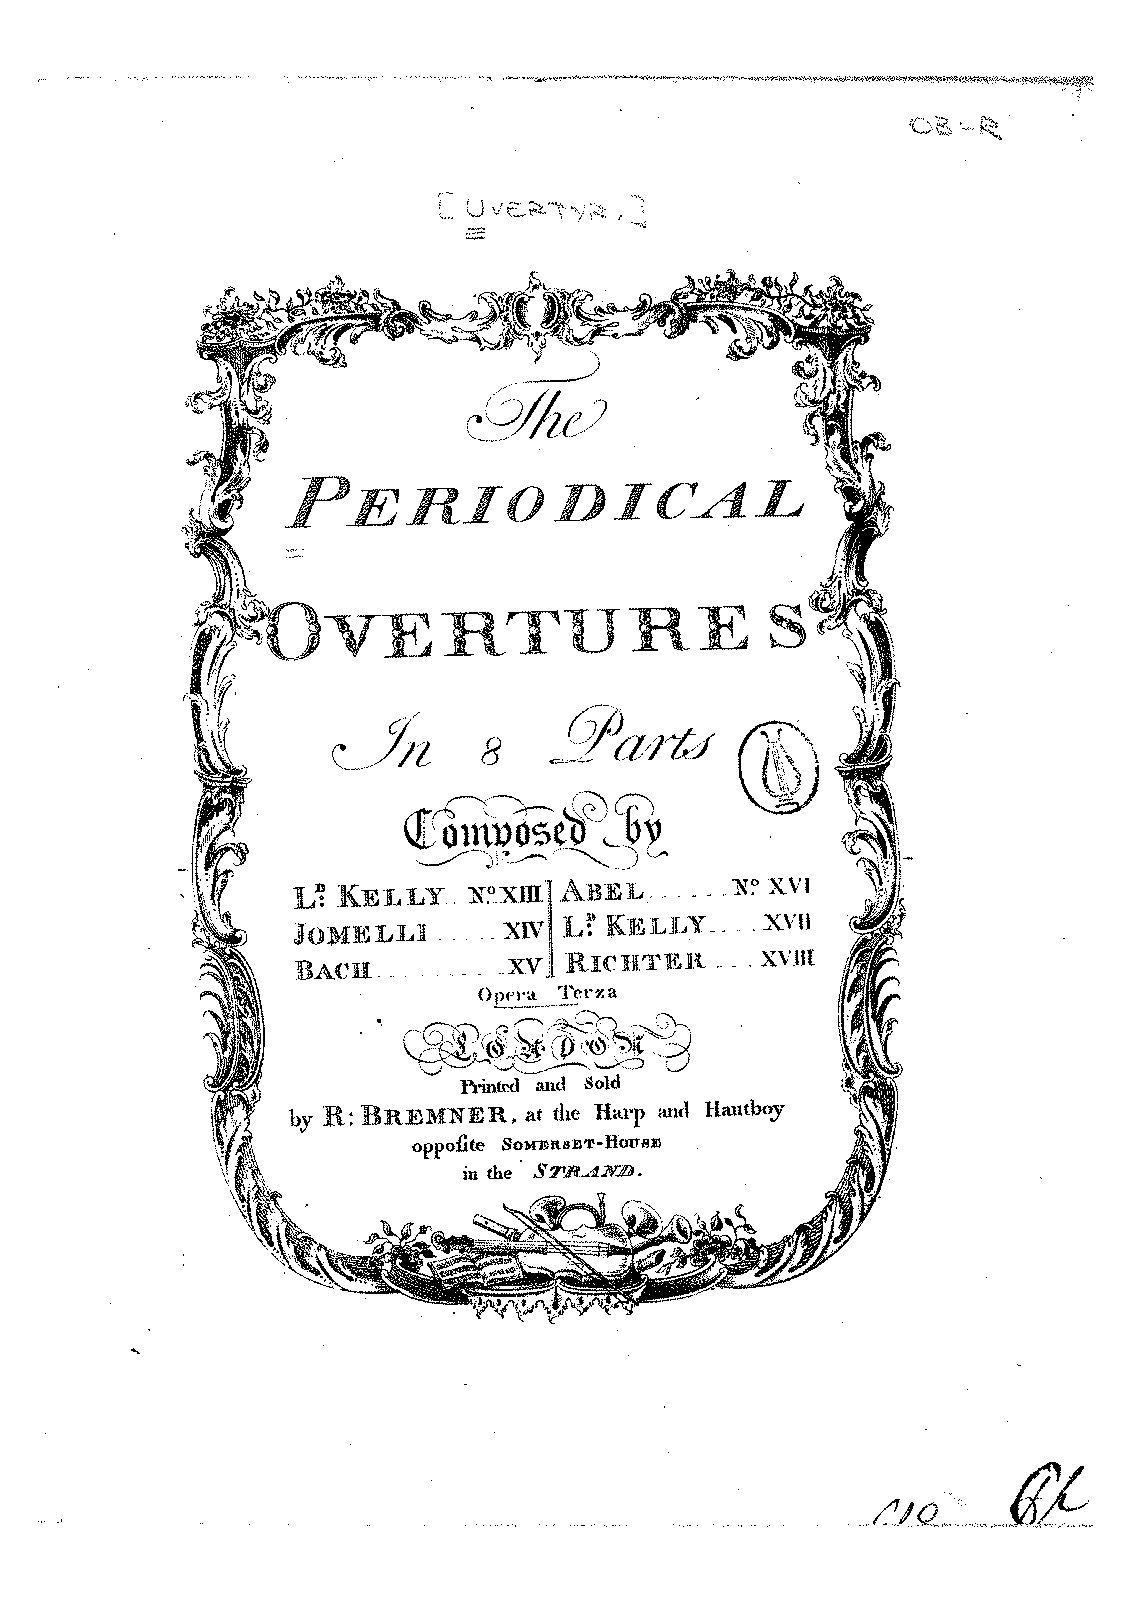 PMLP464613-The Periodical Overtures kelly jommelli jcbach abel richter.pdf